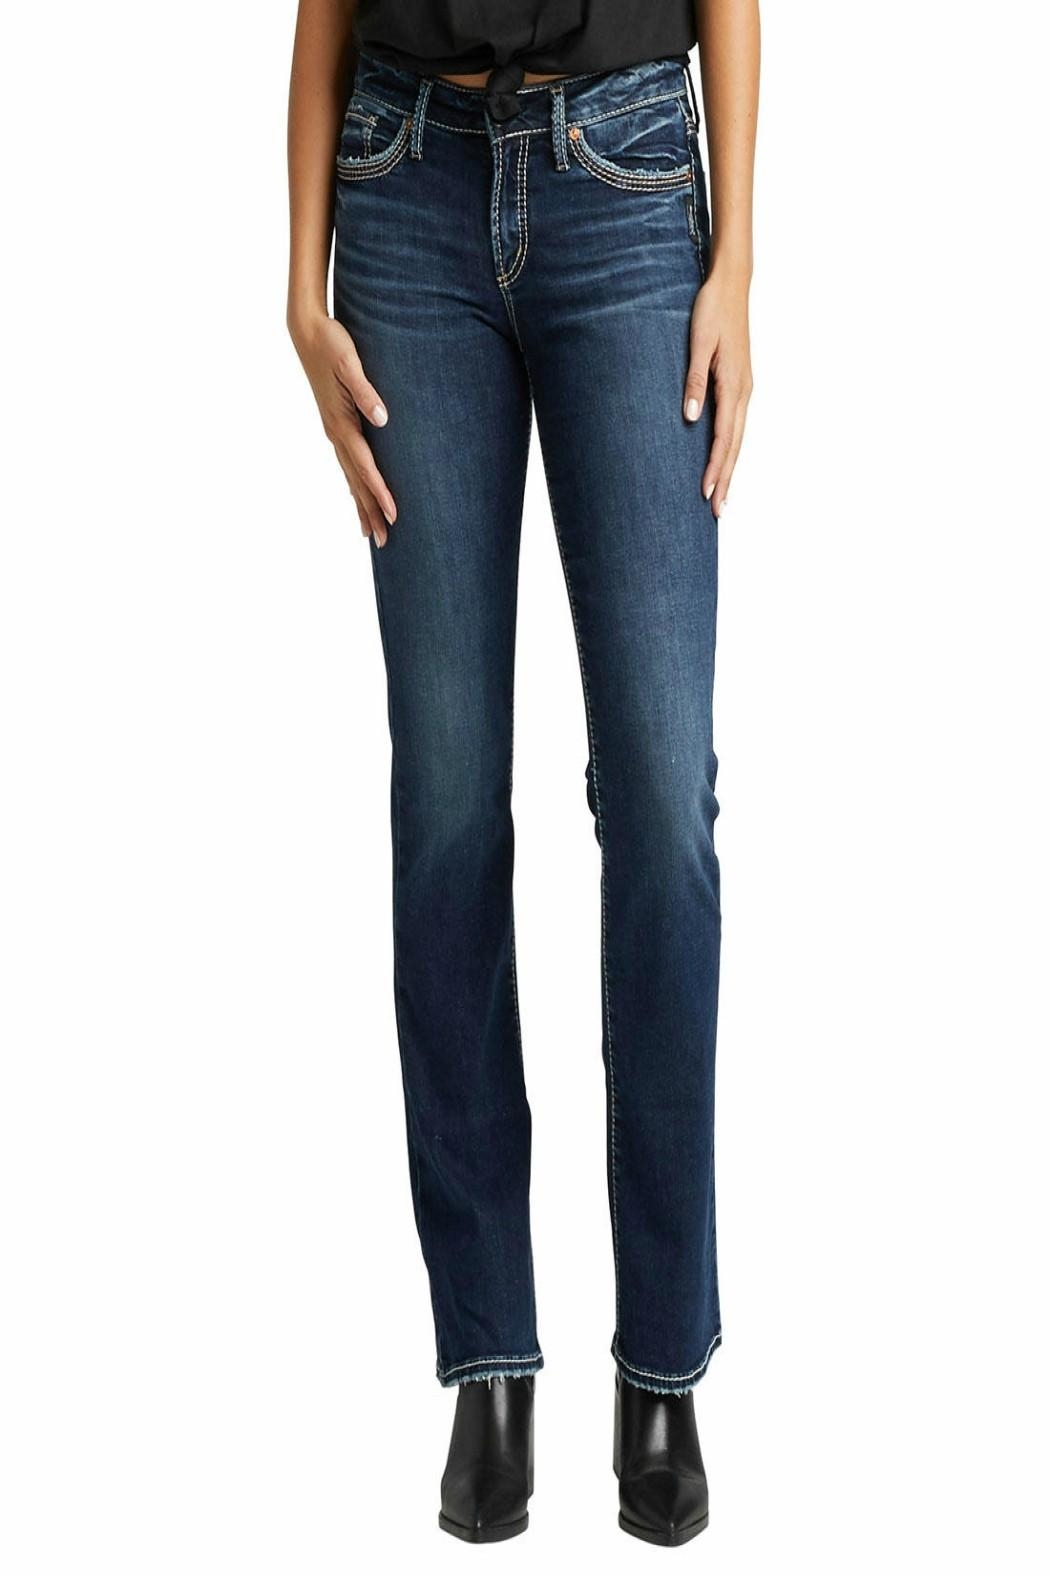 Silver Jeans Co. Suki Slim-Boot Jeans - Main Image